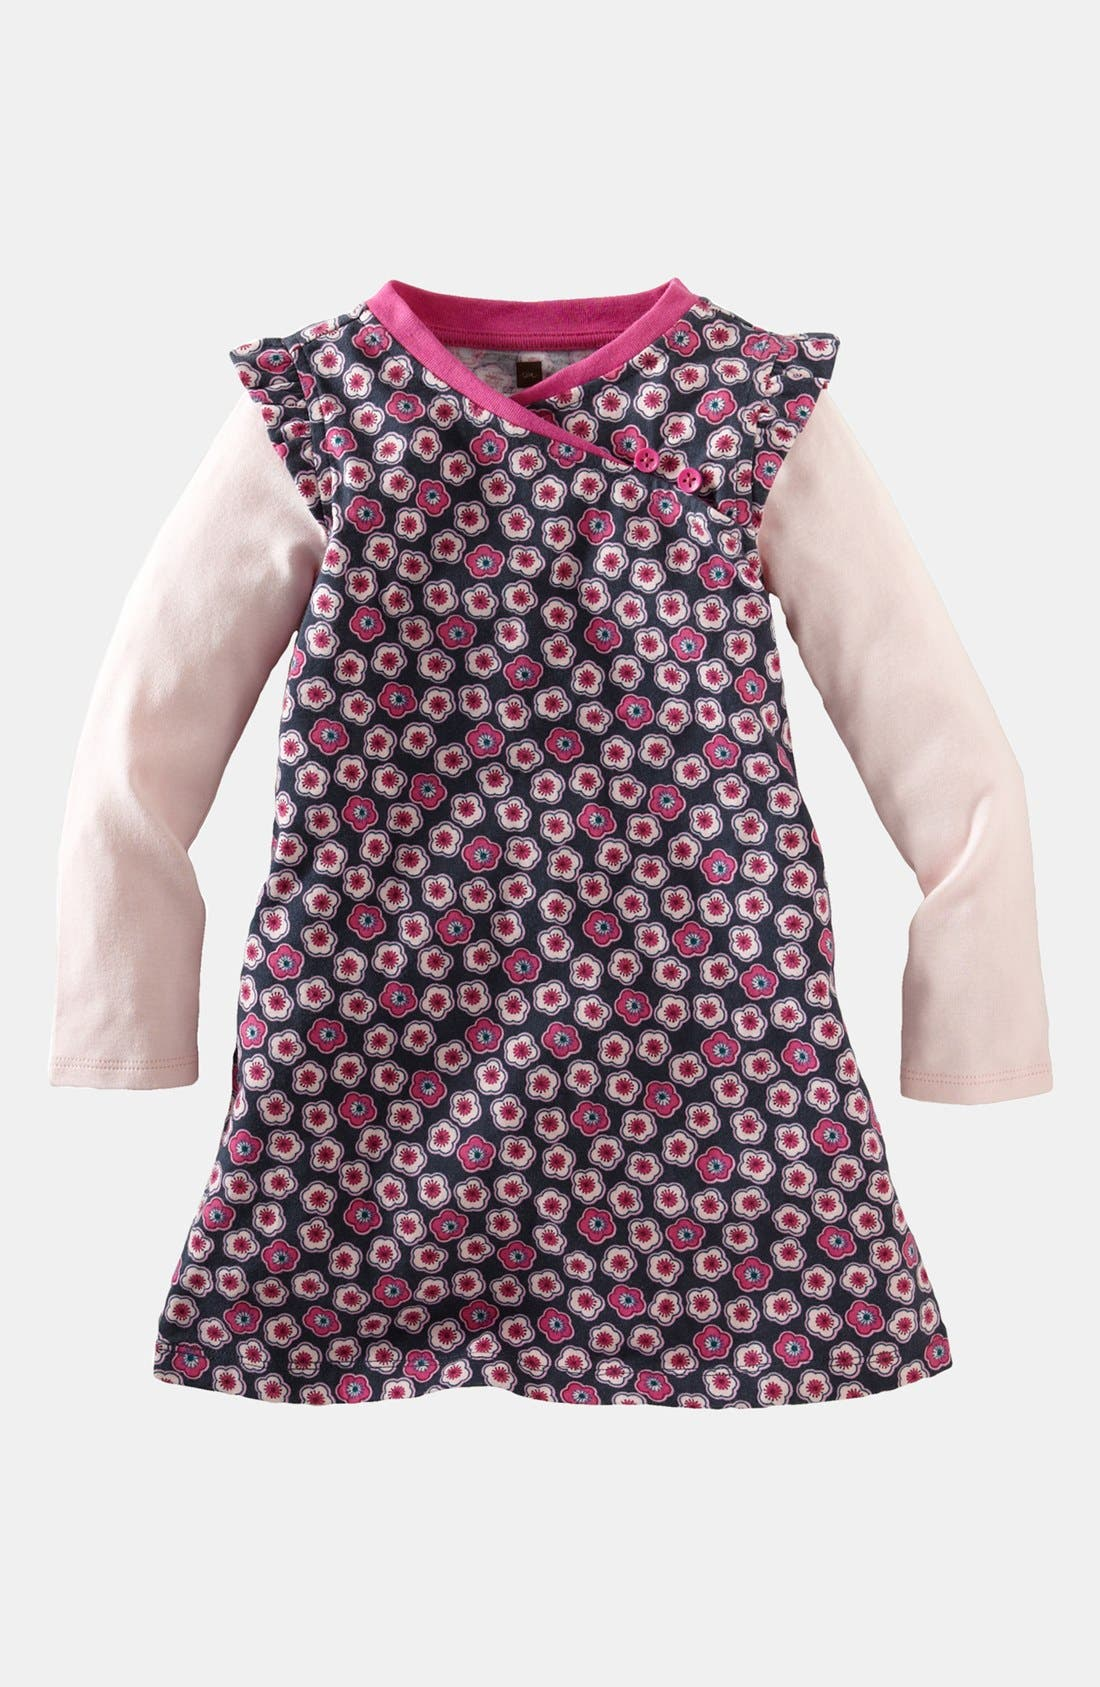 Alternate Image 1 Selected - Tea Collection 'Cherry Blossom' Dress (Baby Girls)